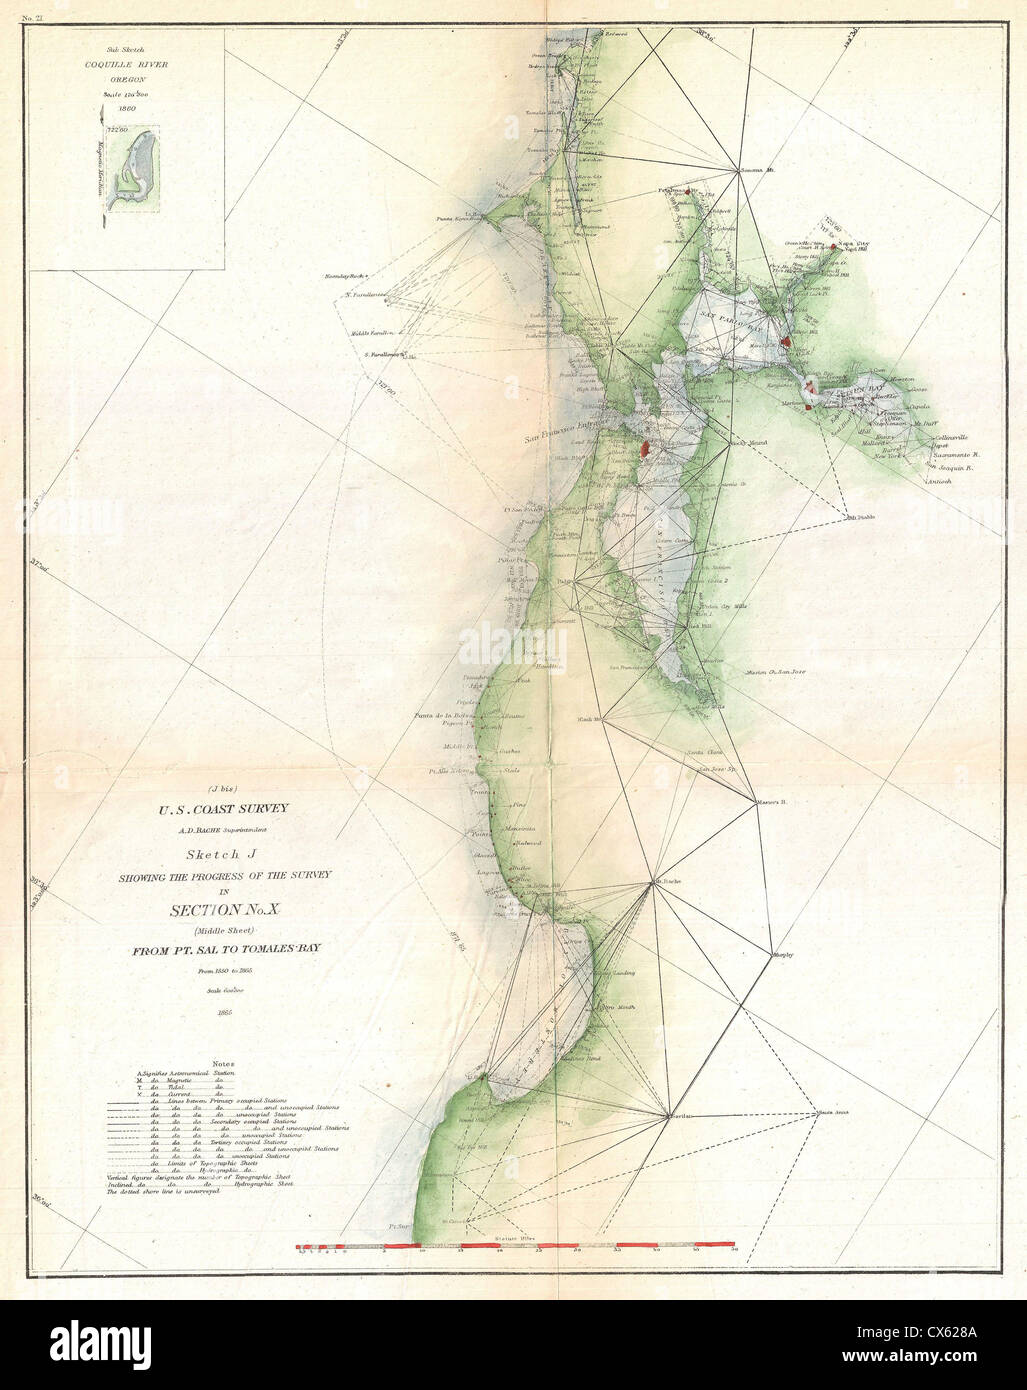 1865 u s coast survey triangulation map of san francisco bay